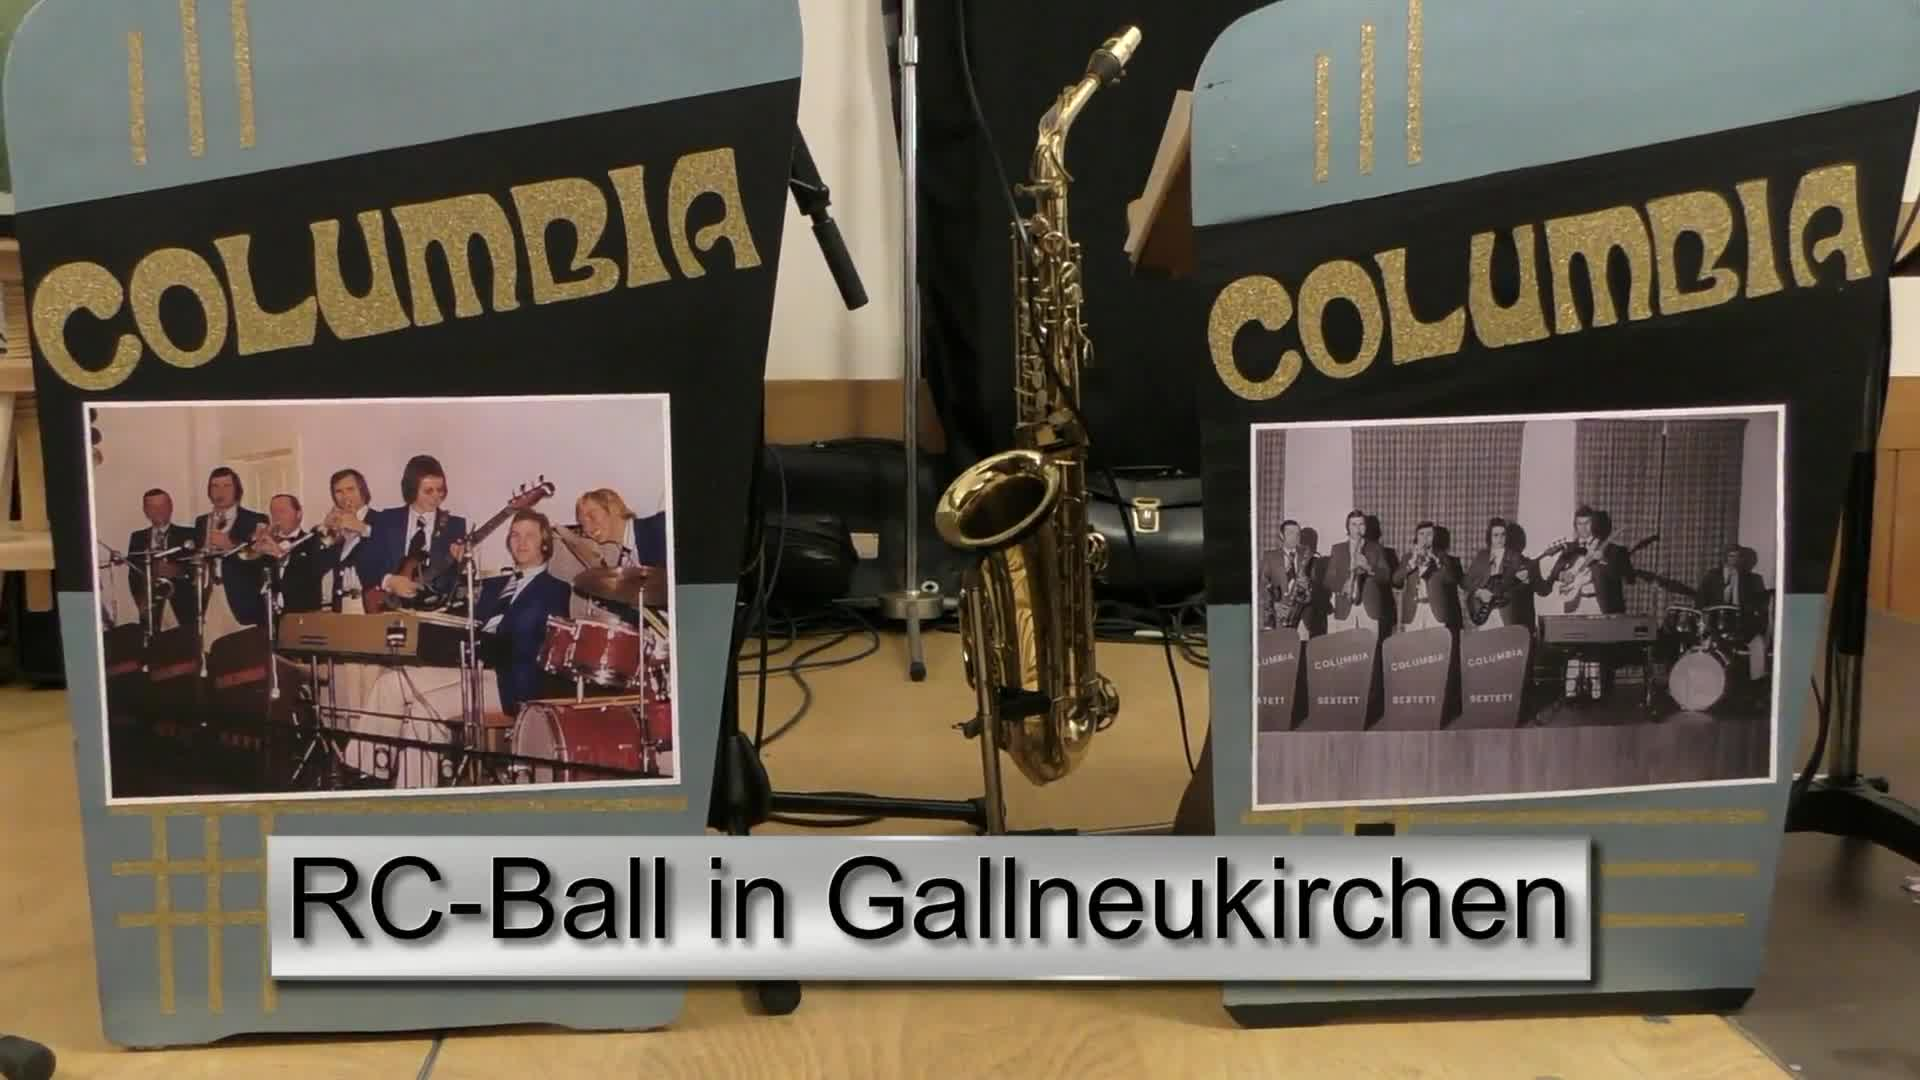 RC-Ball in Gallneukirchen